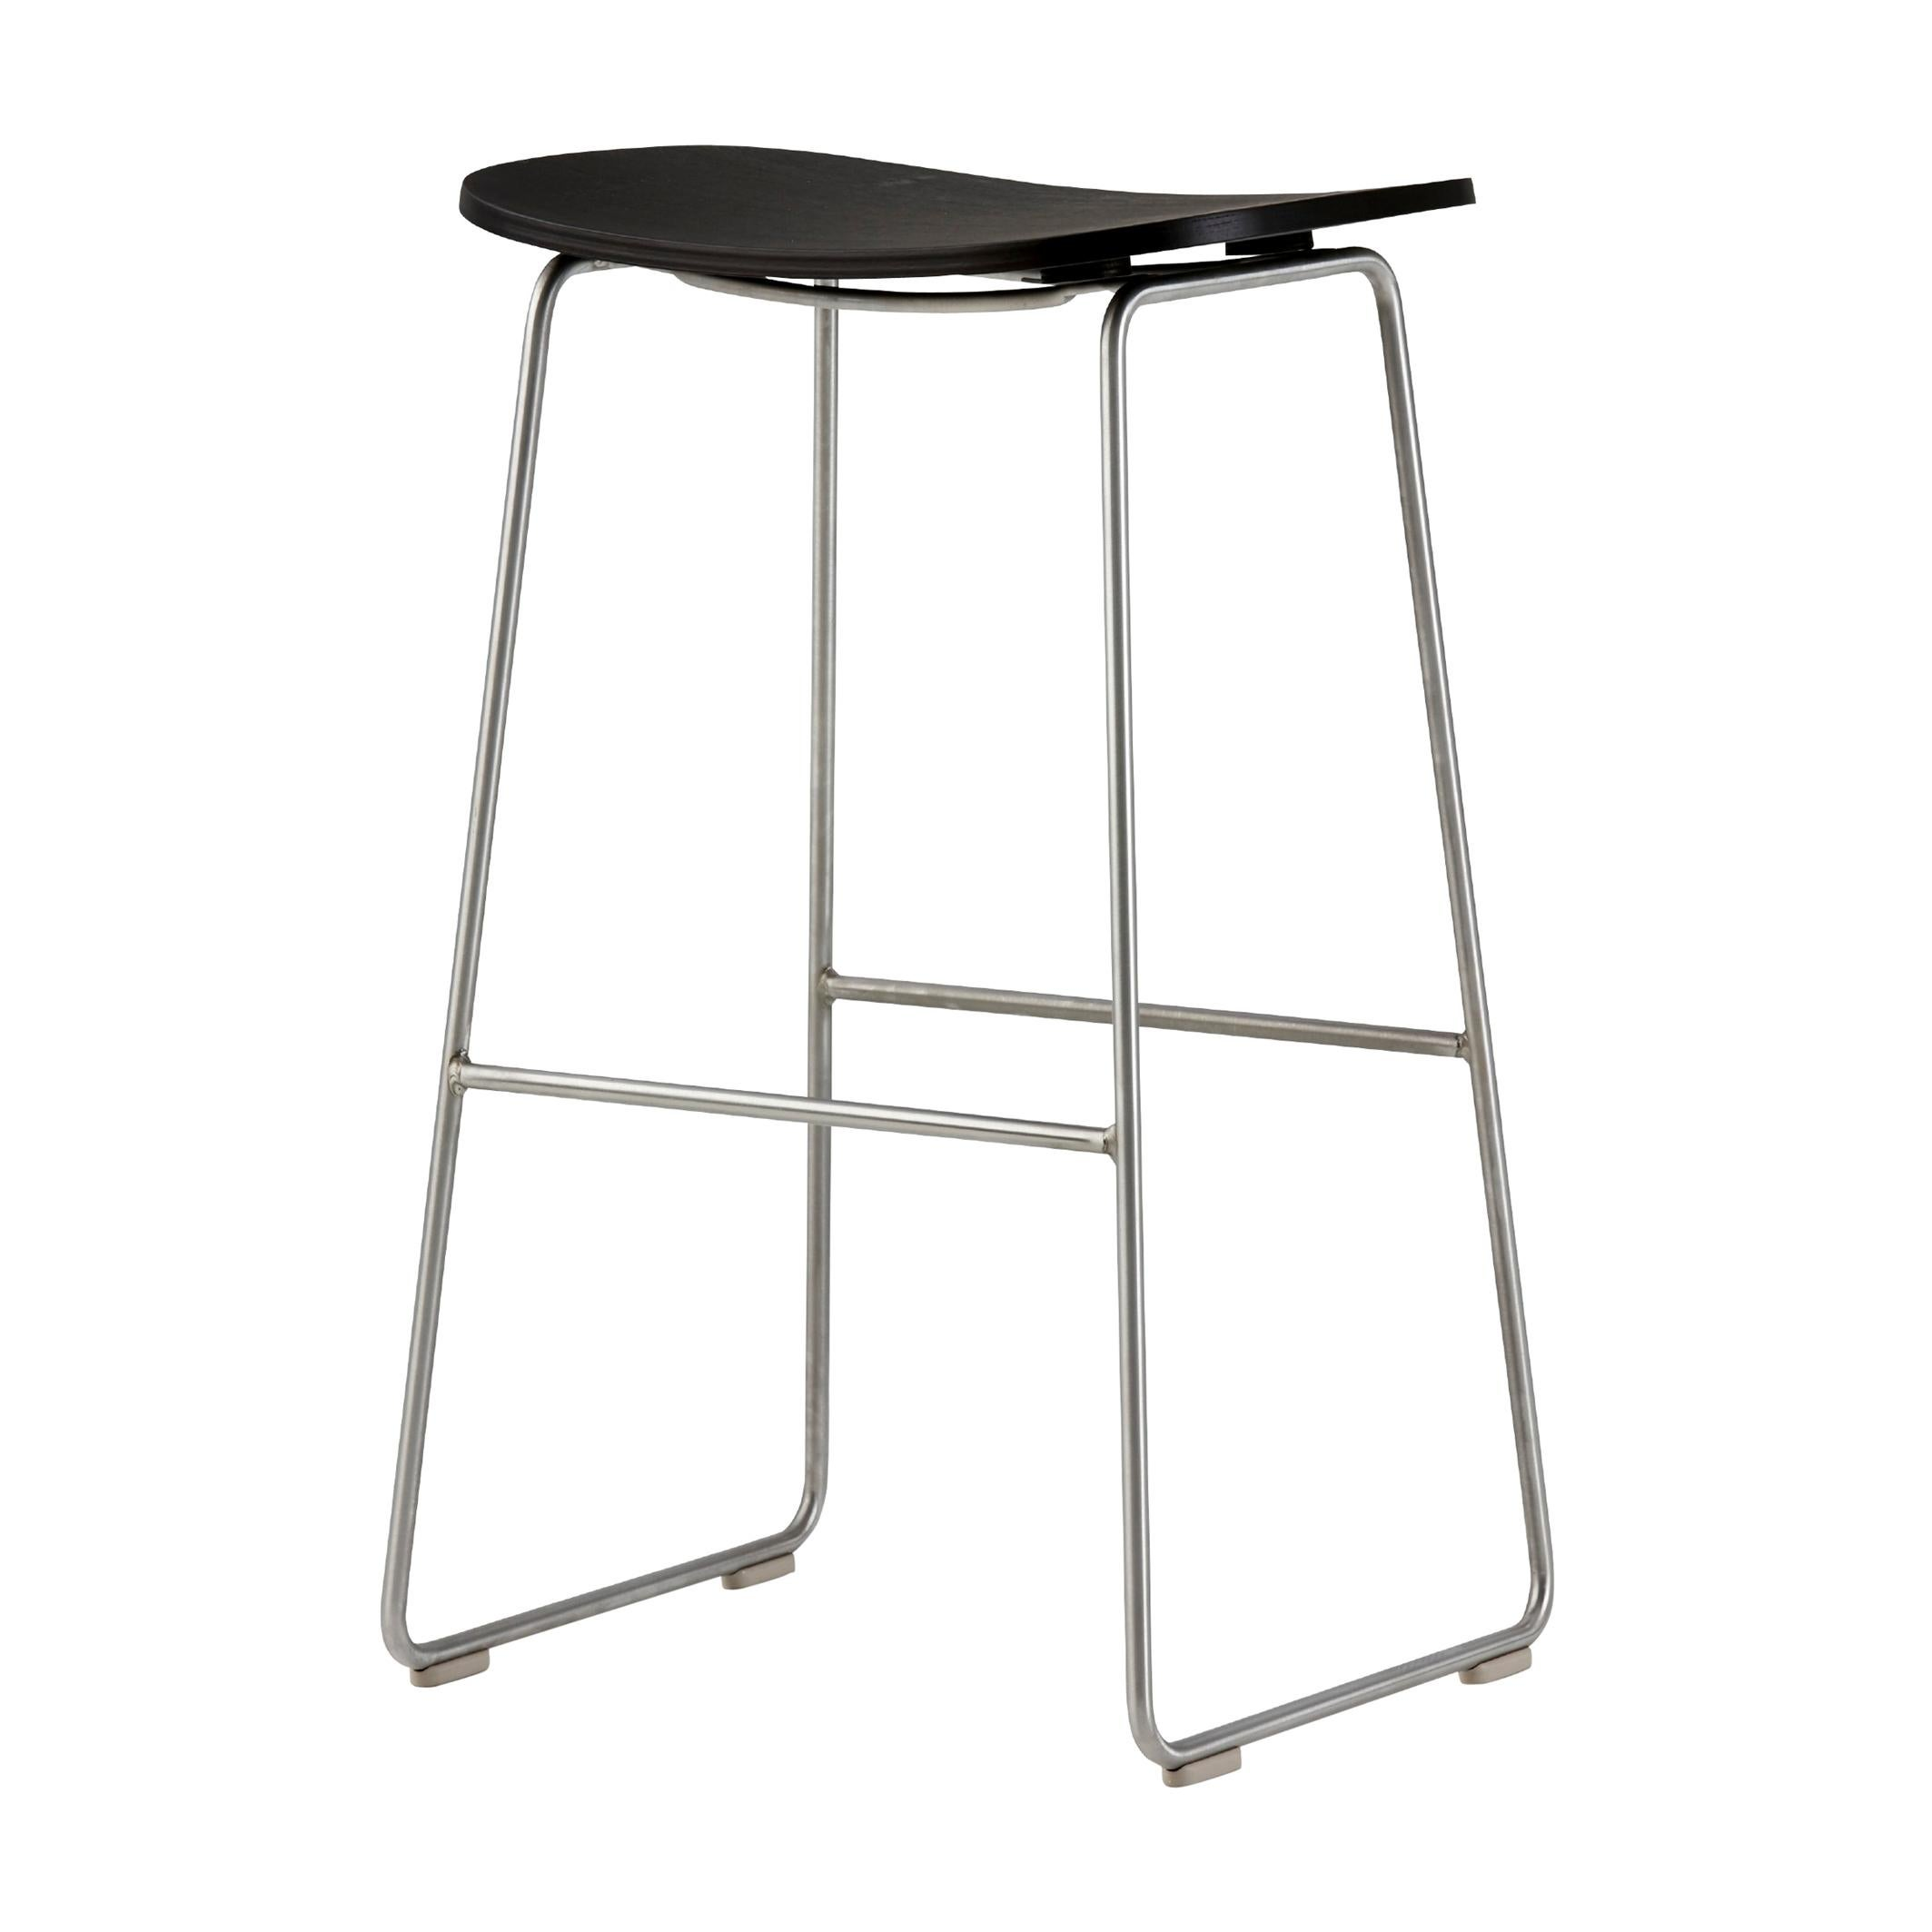 Jasper Morrison Large Morrison Stool in Ash with Fabric or Leather